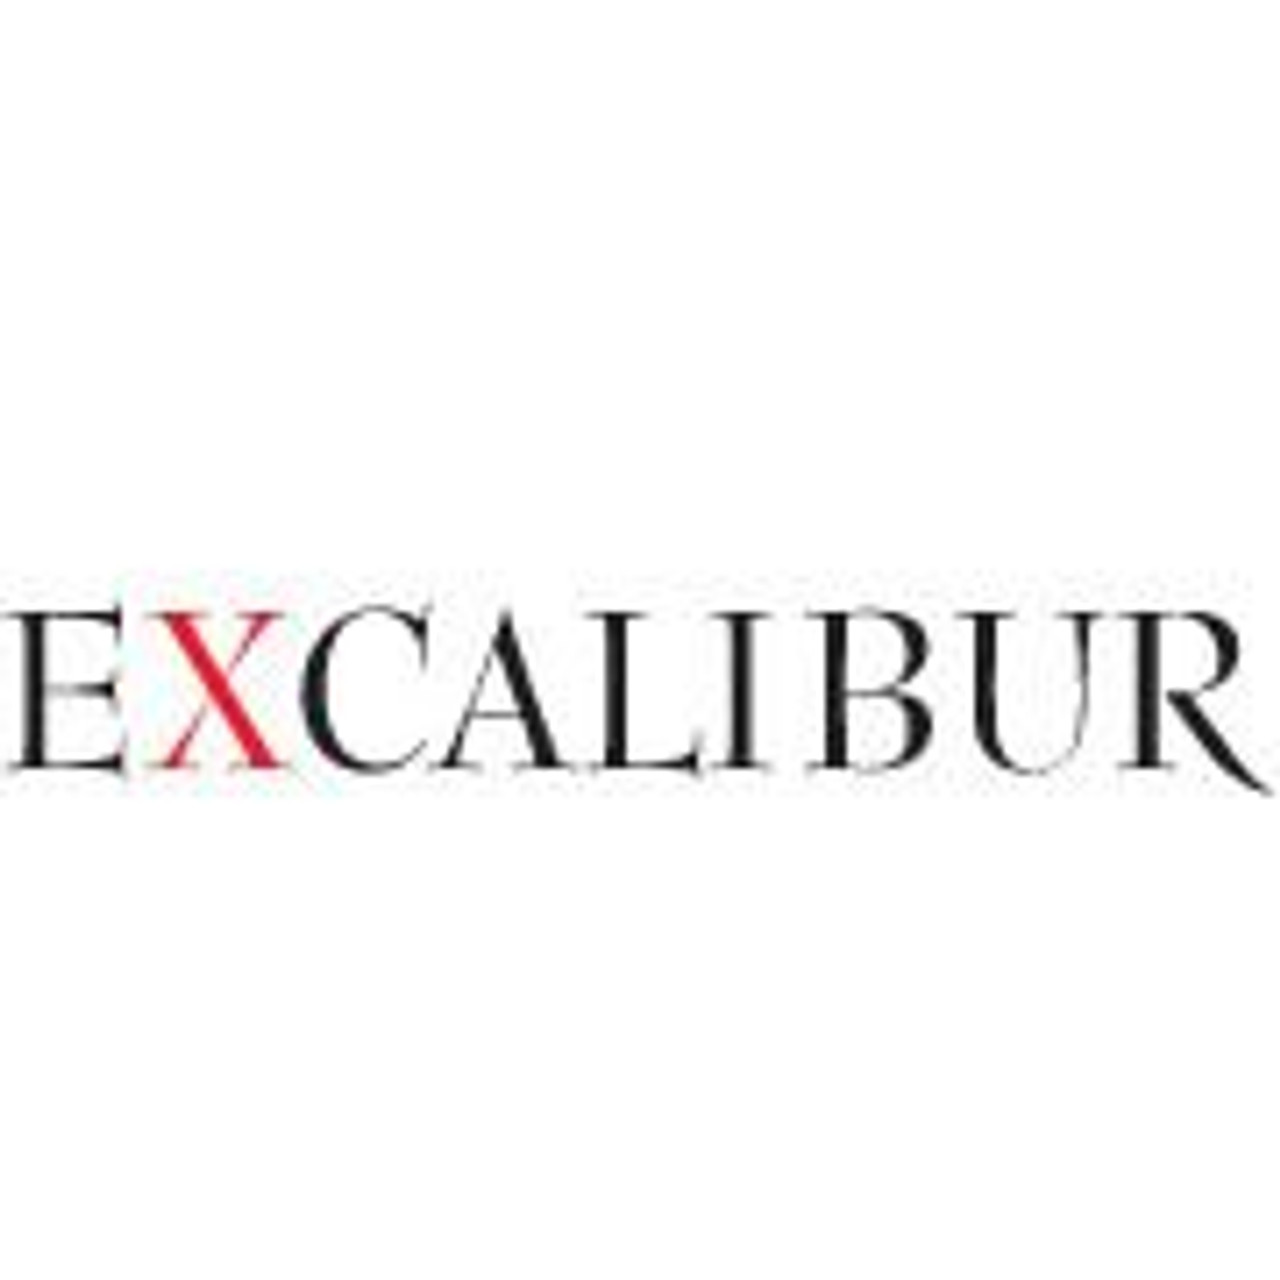 Excalibur No. I Maduro Cigars - 7.25 x 54 (Pack of 5)